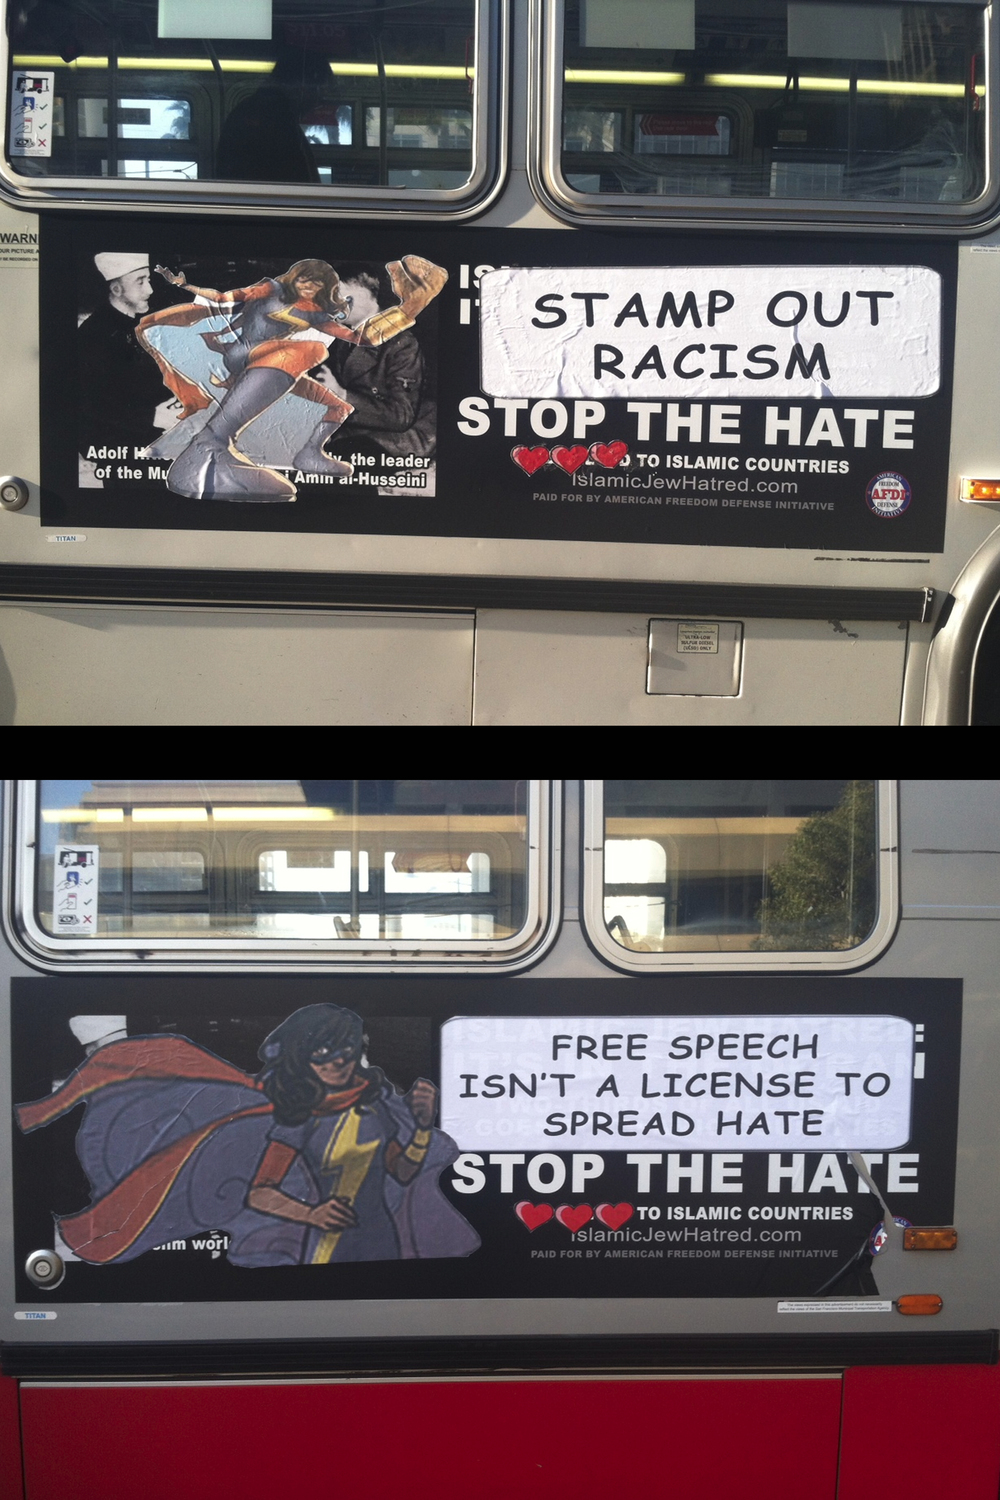 Labeling the AFDI bus ads as racist hate speech, 2015.